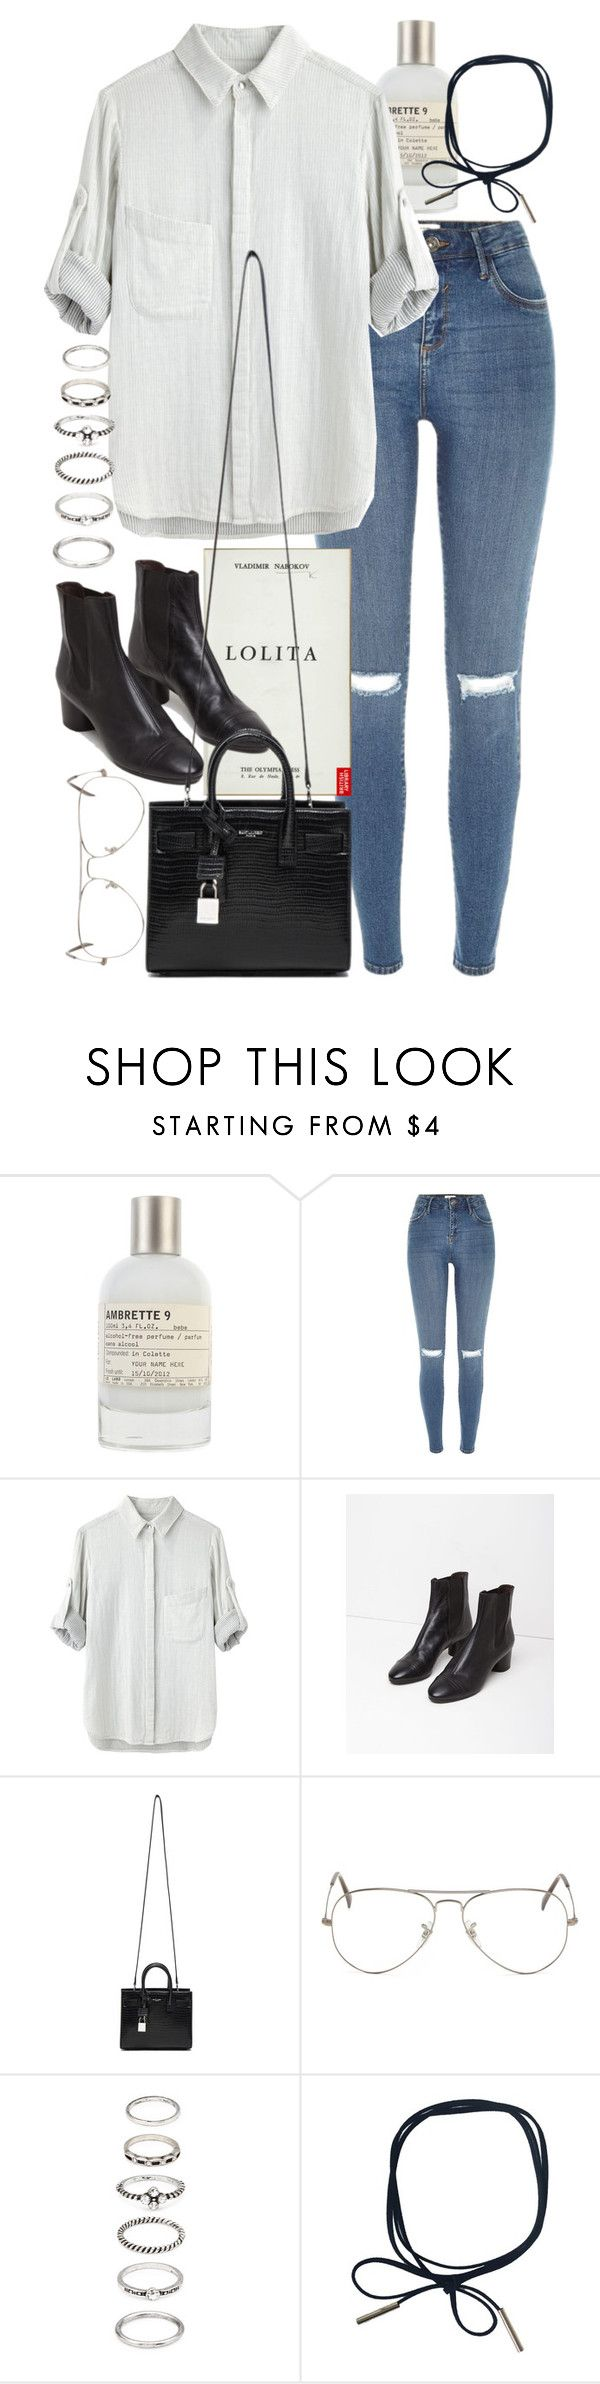 """""""Untitled #9272"""" by nikka-phillips ❤ liked on Polyvore featuring Le Labo, River Island, rag & bone, Isabel Marant, Yves Saint Laurent, Ray-Ban and Forever 21"""